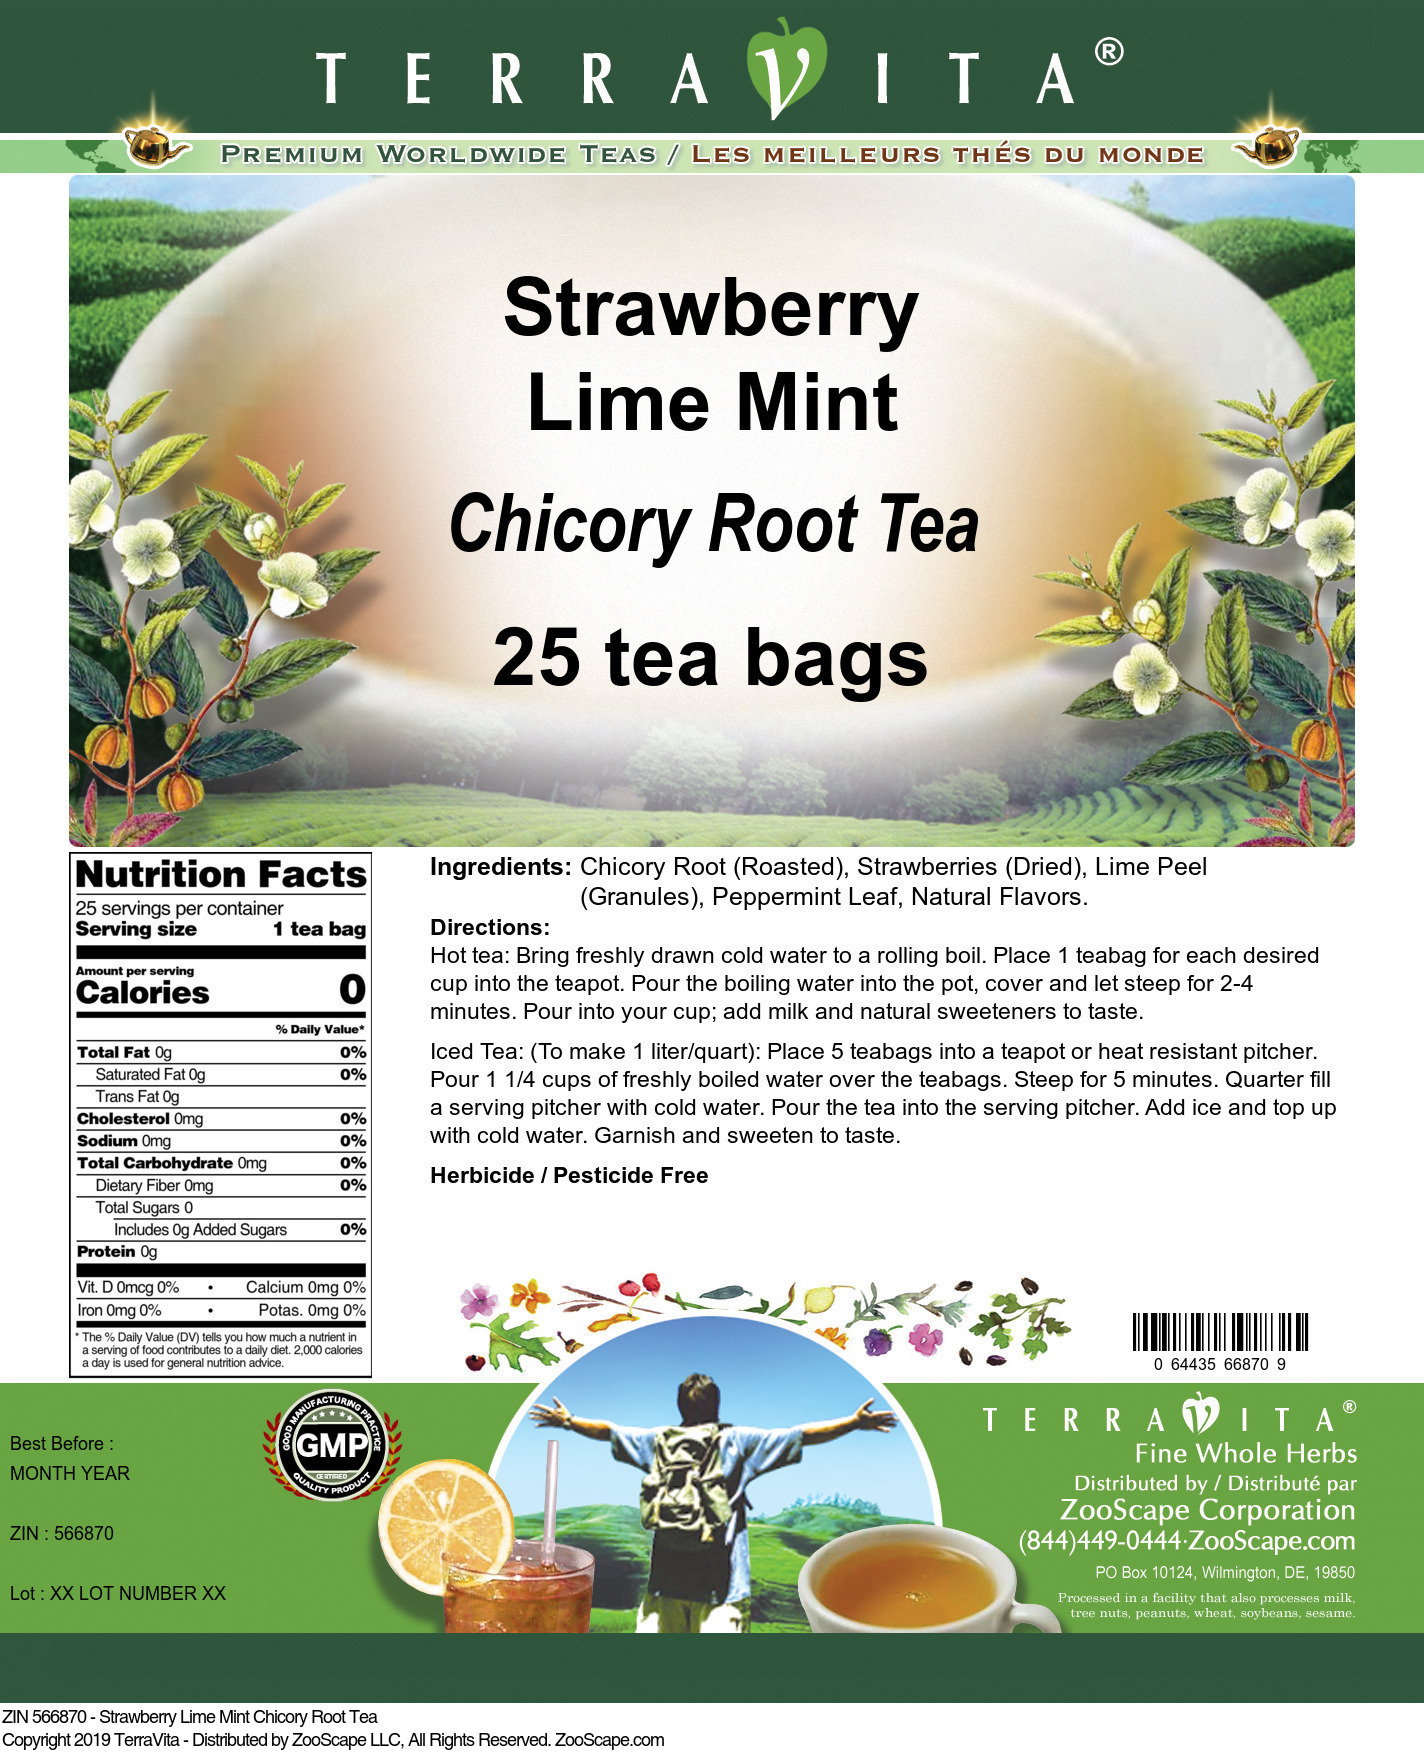 Strawberry Lime Mint Chicory Root Tea